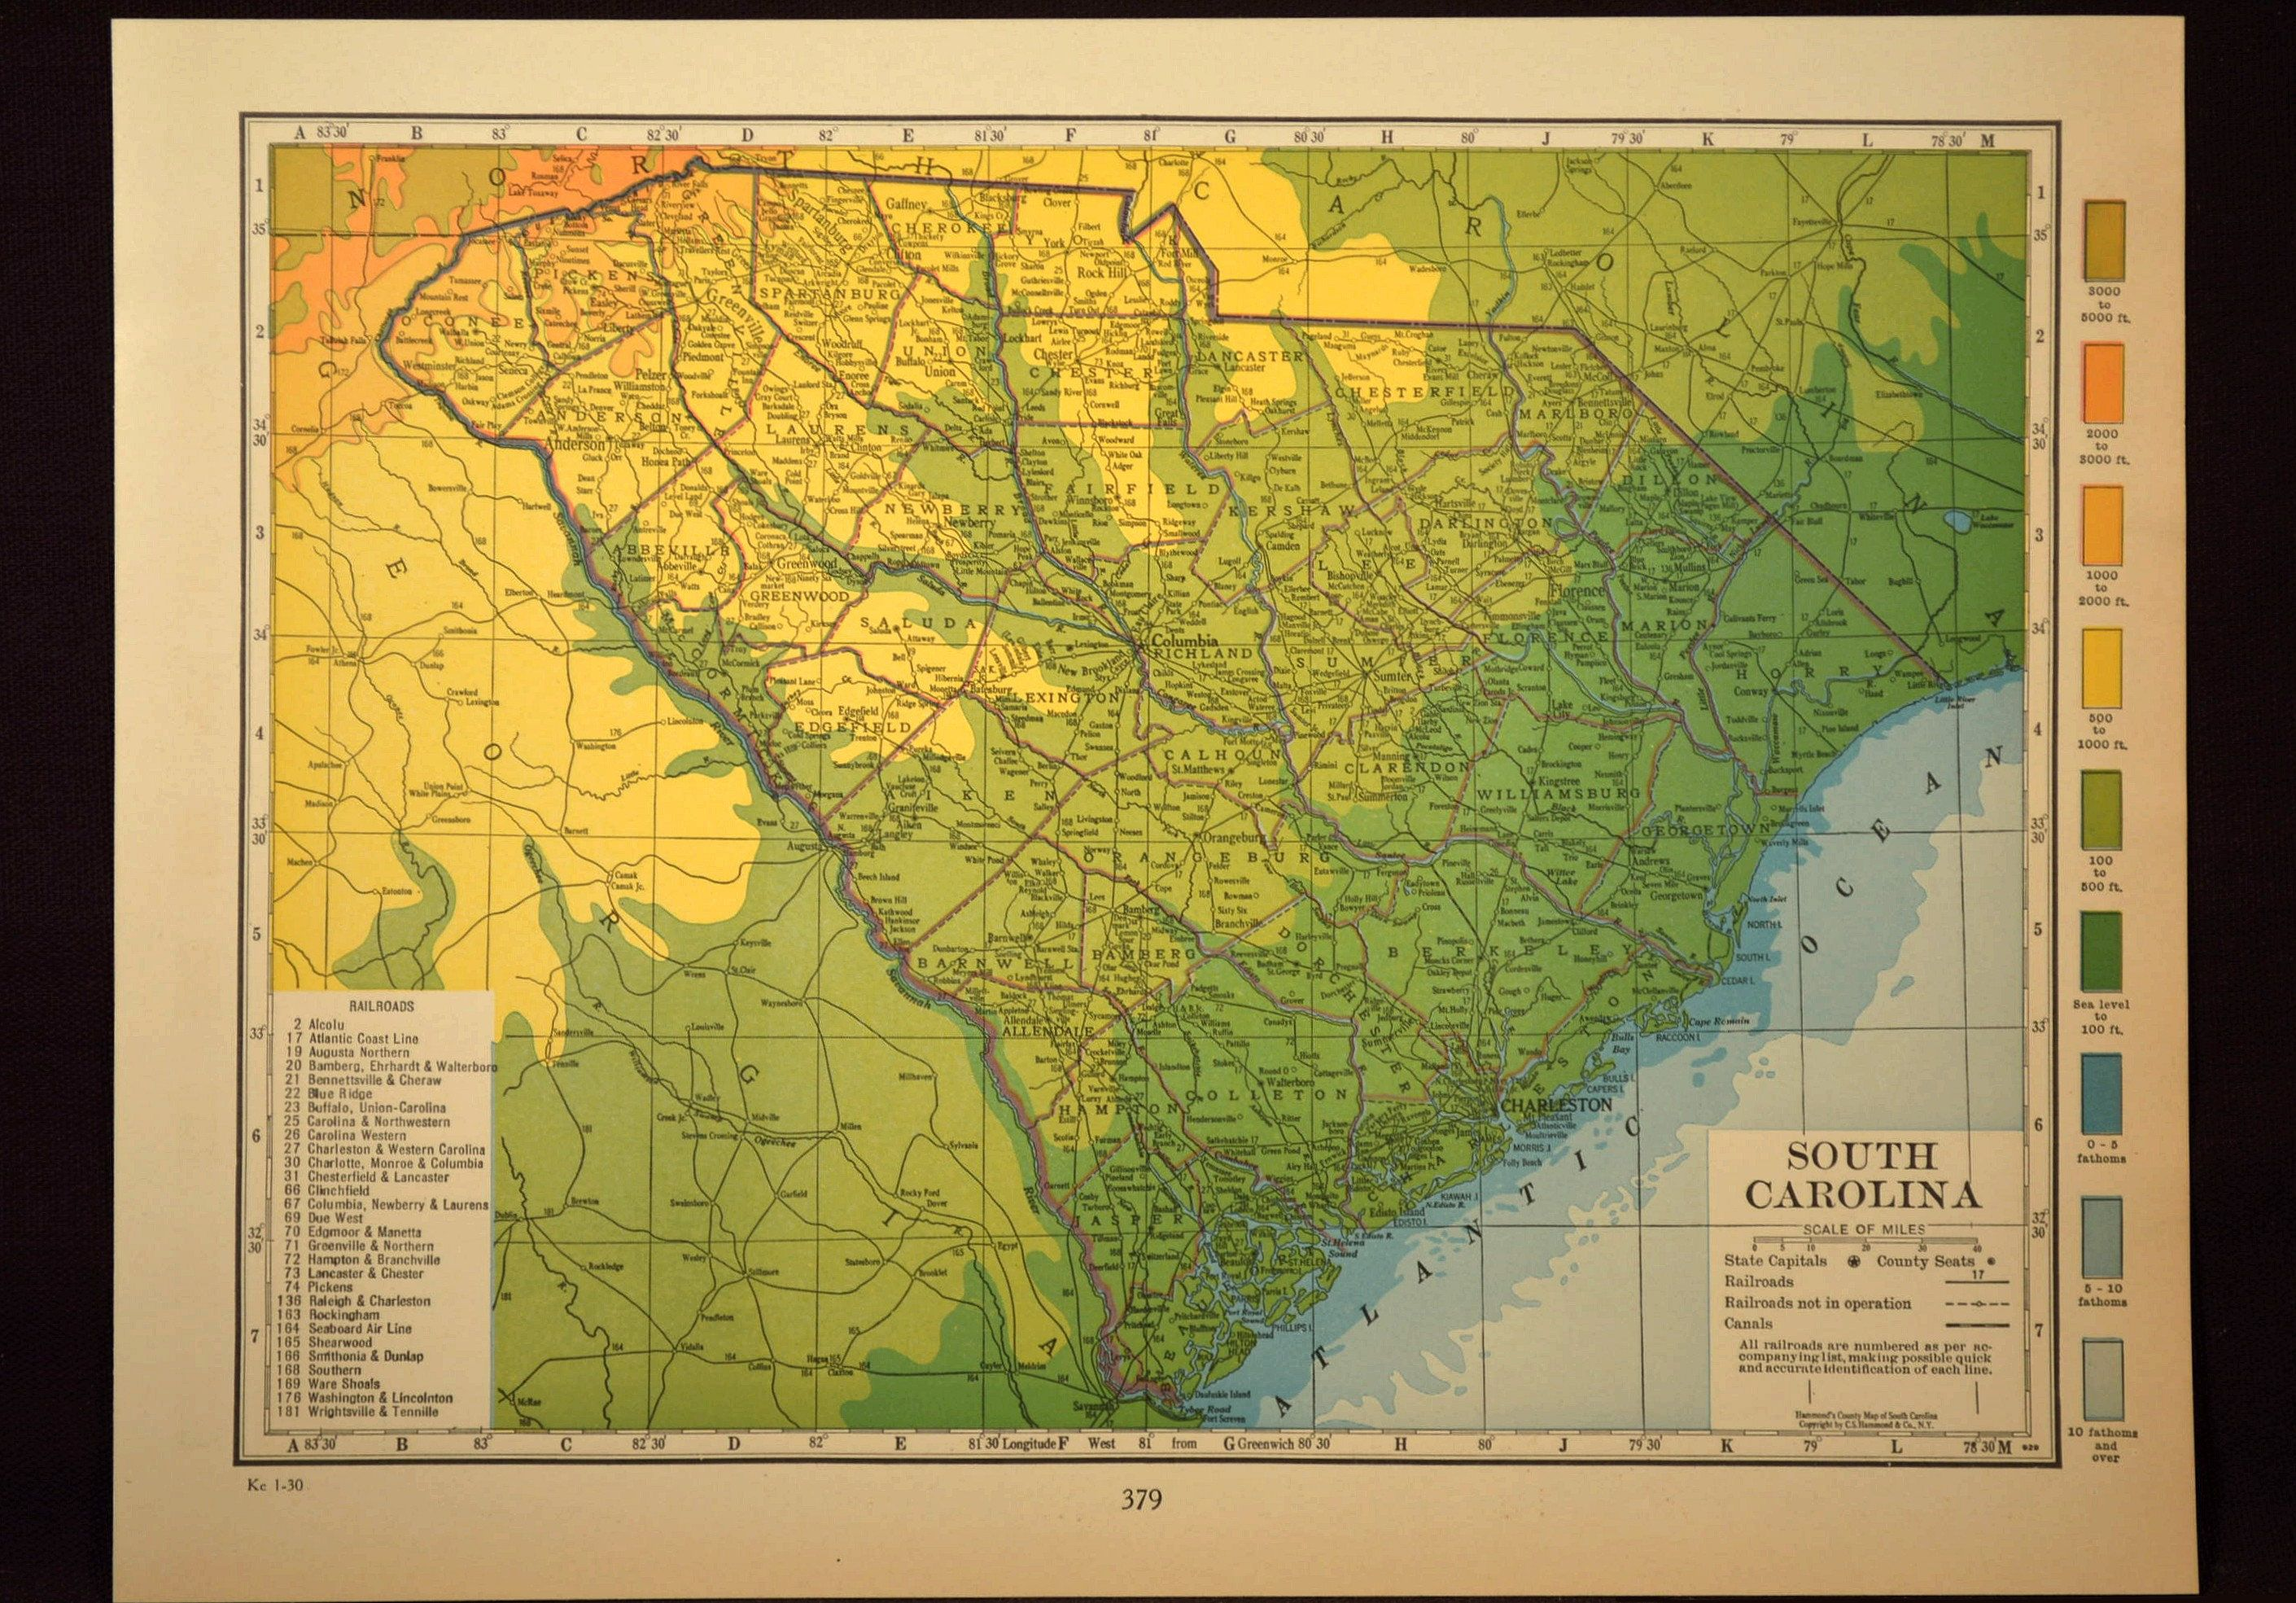 South Carolina Map South Carolina Topographic Map Colorful Colored ...